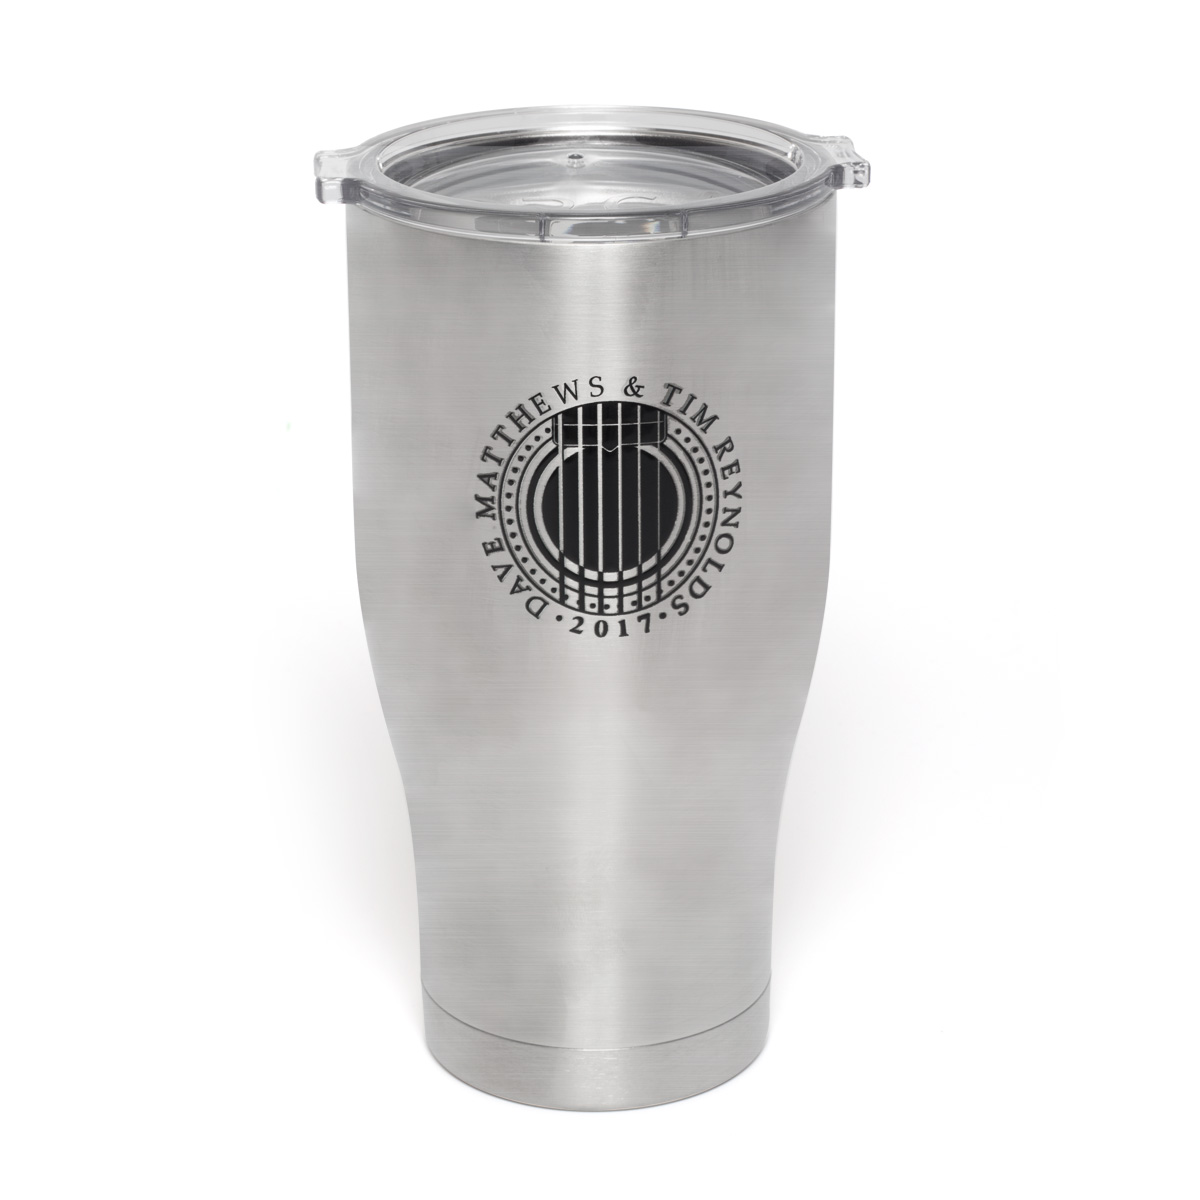 Dave & Tim Stainless Steel Travel Mug